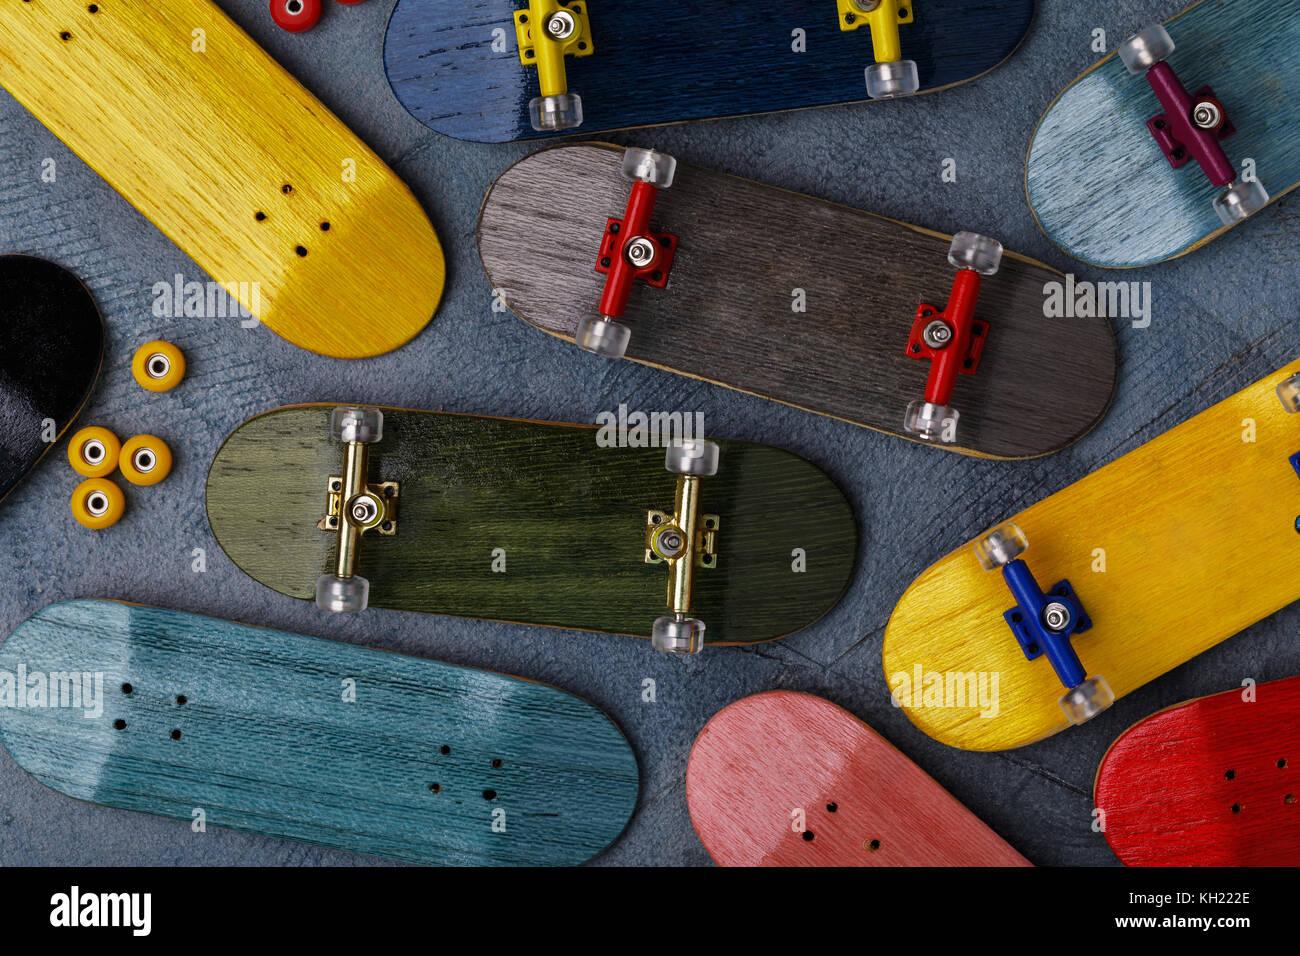 Fingerboards Stock Photos Fingerboards Stock Images Alamy